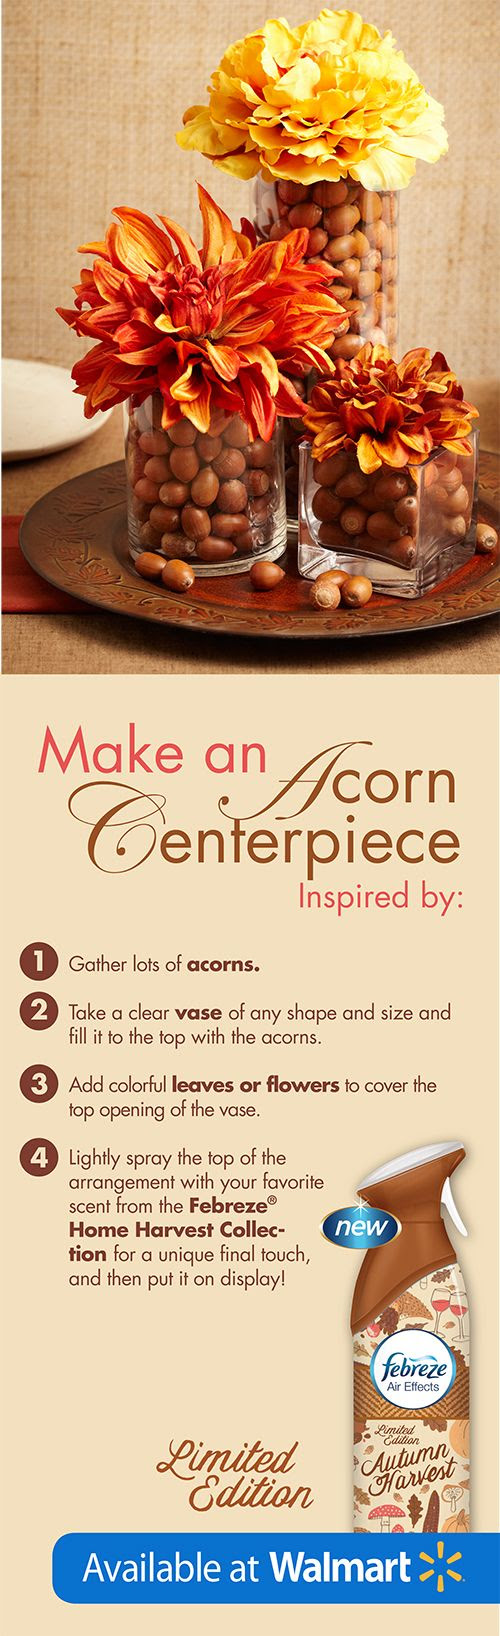 The perfect fall centerpiece in just 4 easy steps! #FebrezeFall